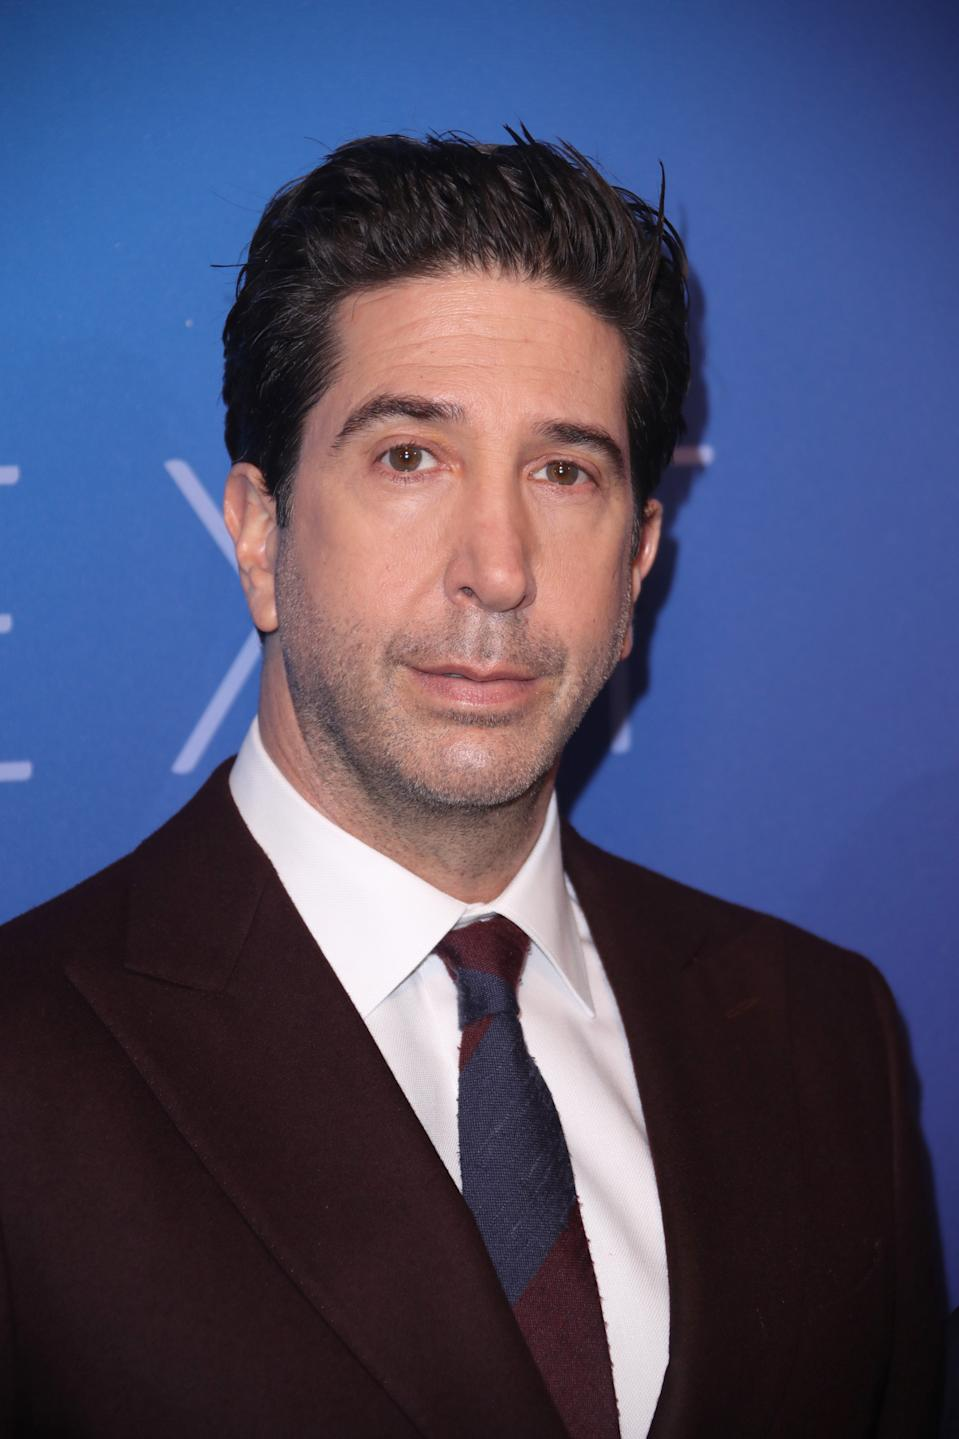 David Schwimmer attends the Sky Up Next 2020 at Tate Modern on February 12, 2020 in London, England. (Photo by Mike Marsland/WireImage)